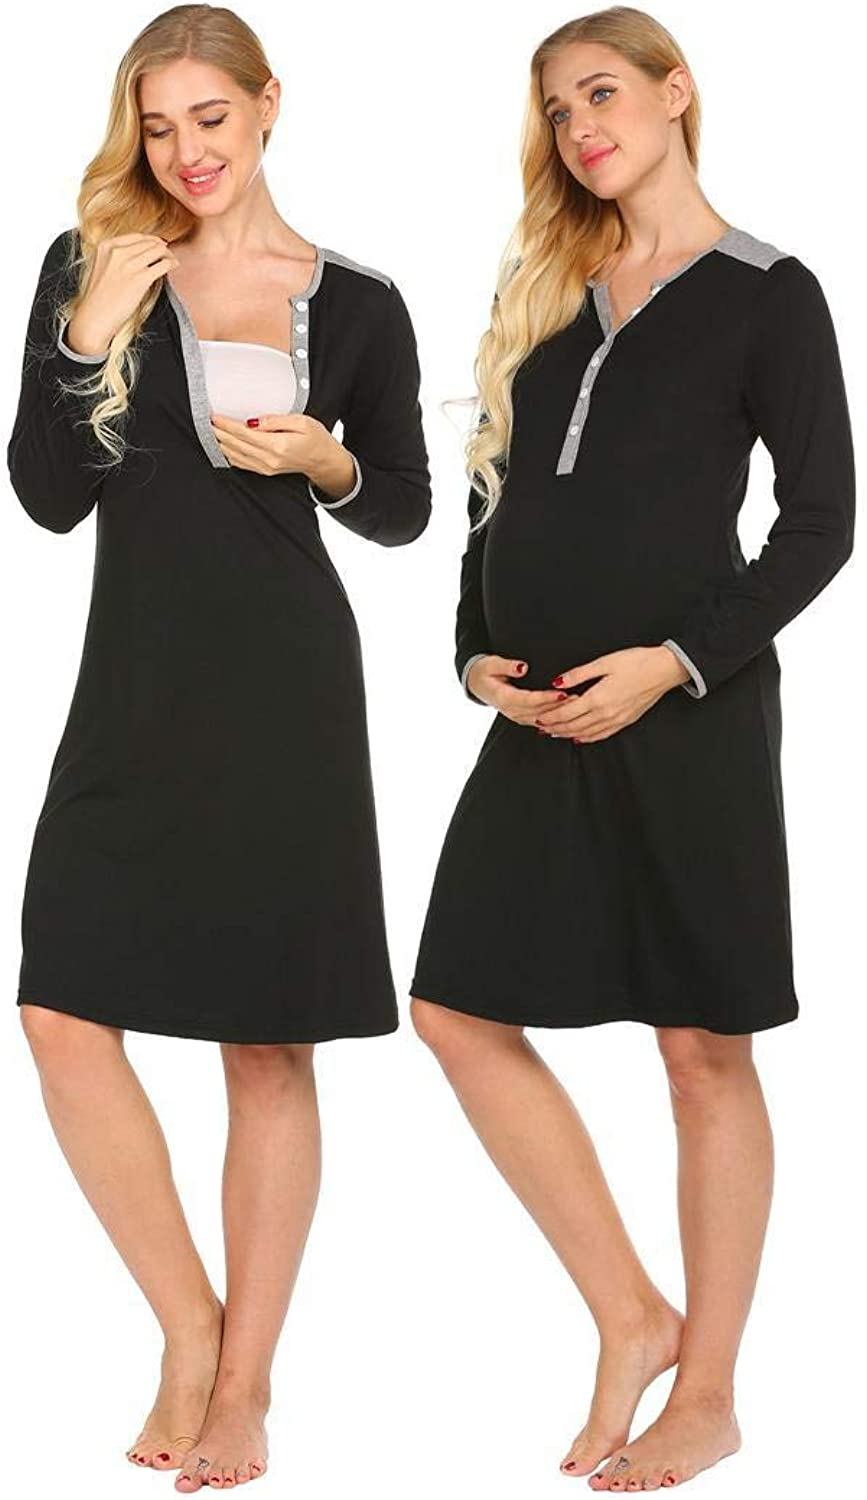 Imposes Women Nursing Nightgown Maternity Dress Long Sleeve Sleepwear for Breastfeeding SXXL